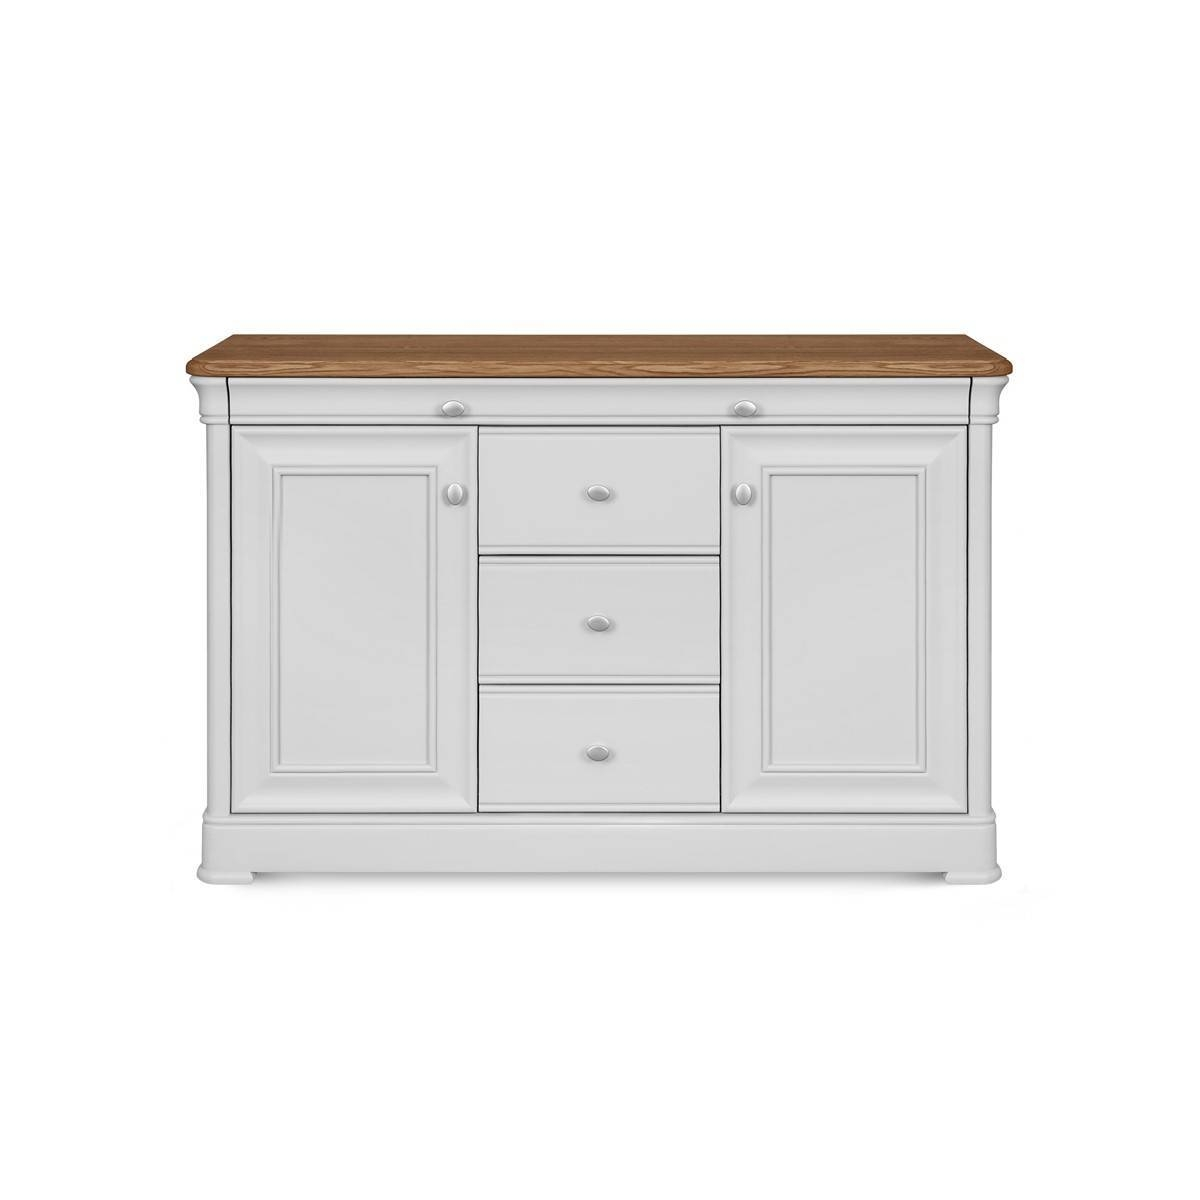 Clemence Richard Tuscany Sideboard | Sideboards | Inspire Interiors with Tuscany Sideboards (Image 6 of 30)